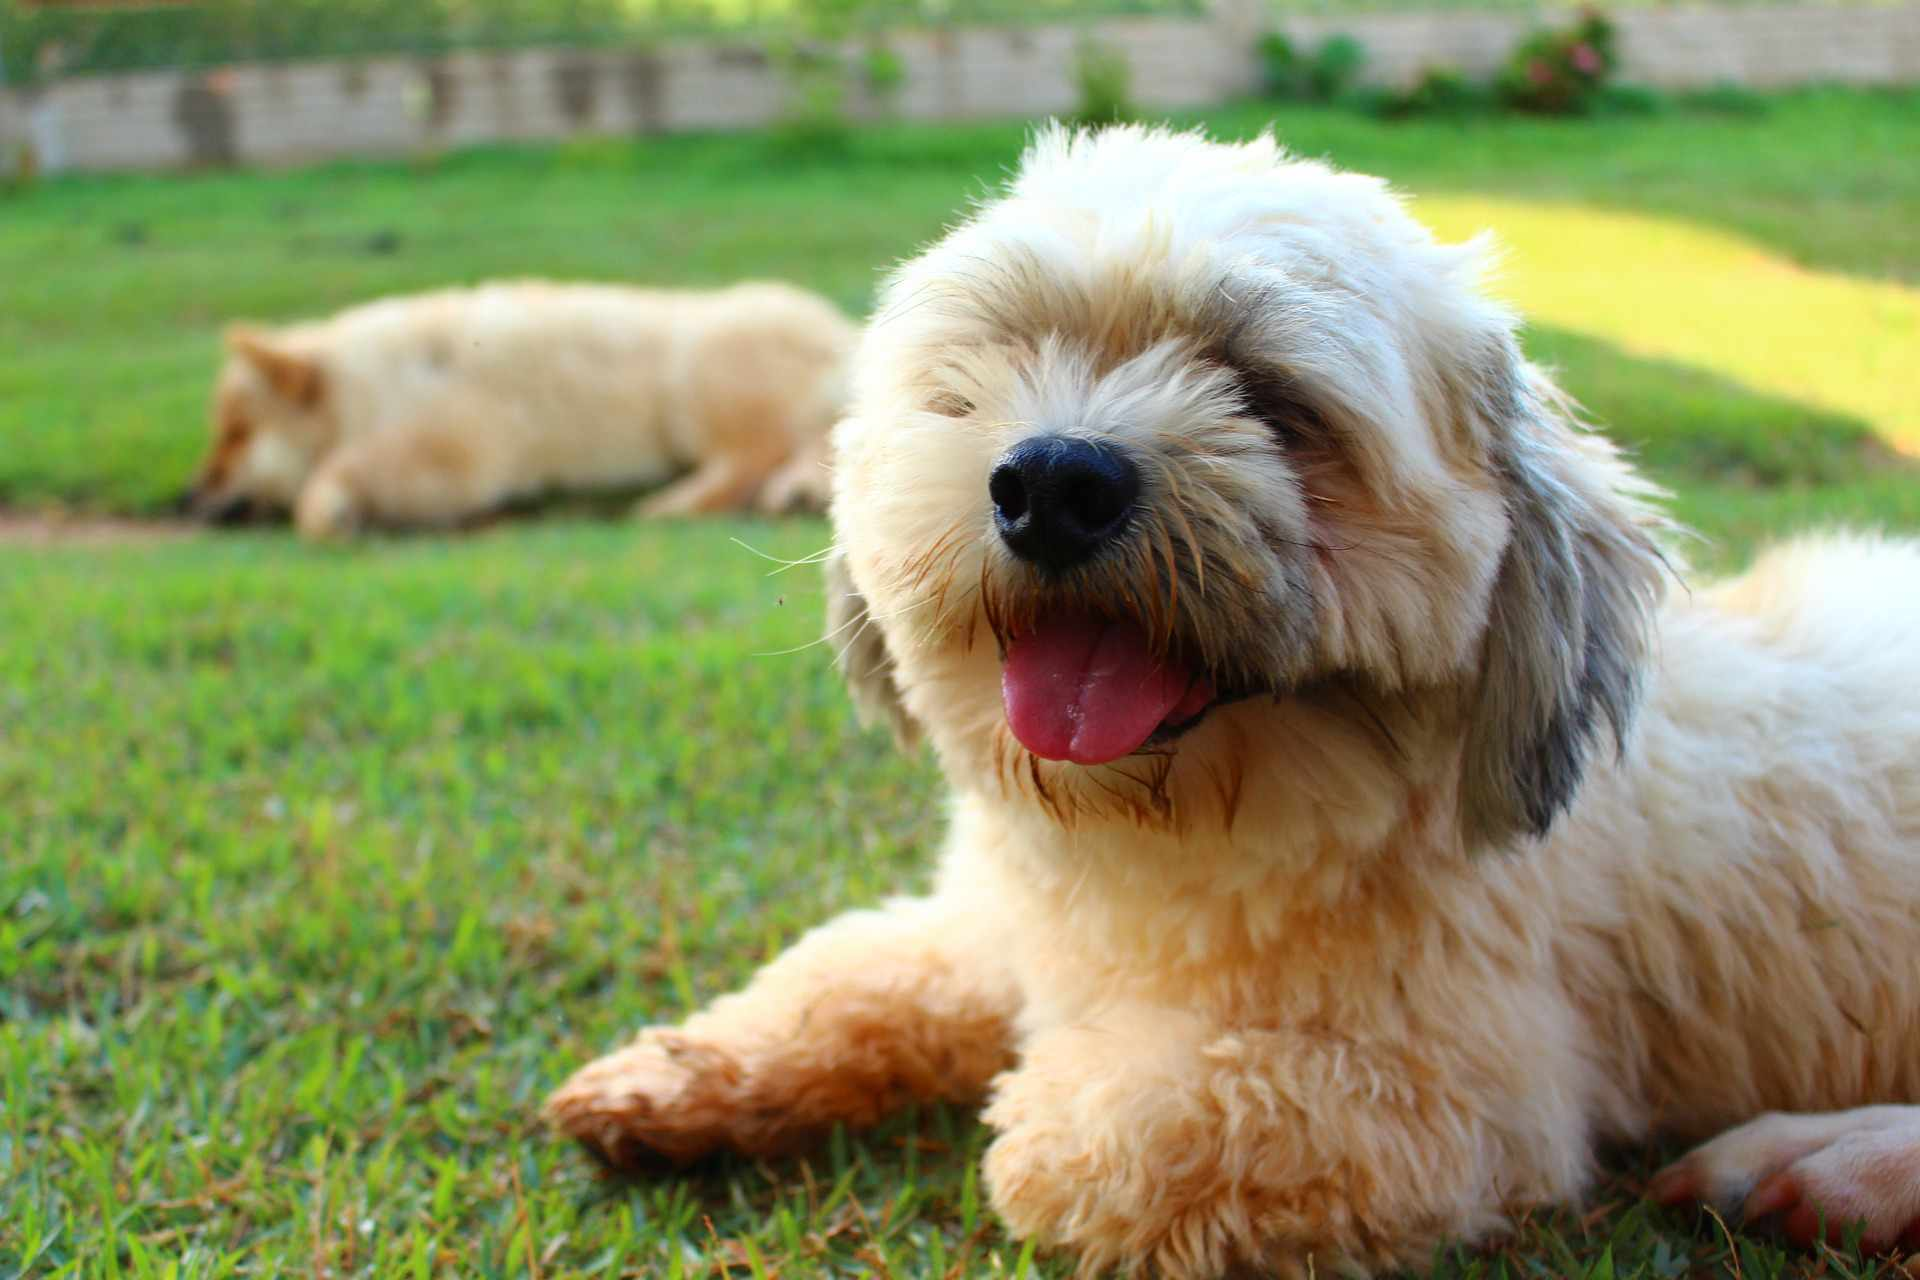 A Lhasa Apso puppy smiling for the camera.